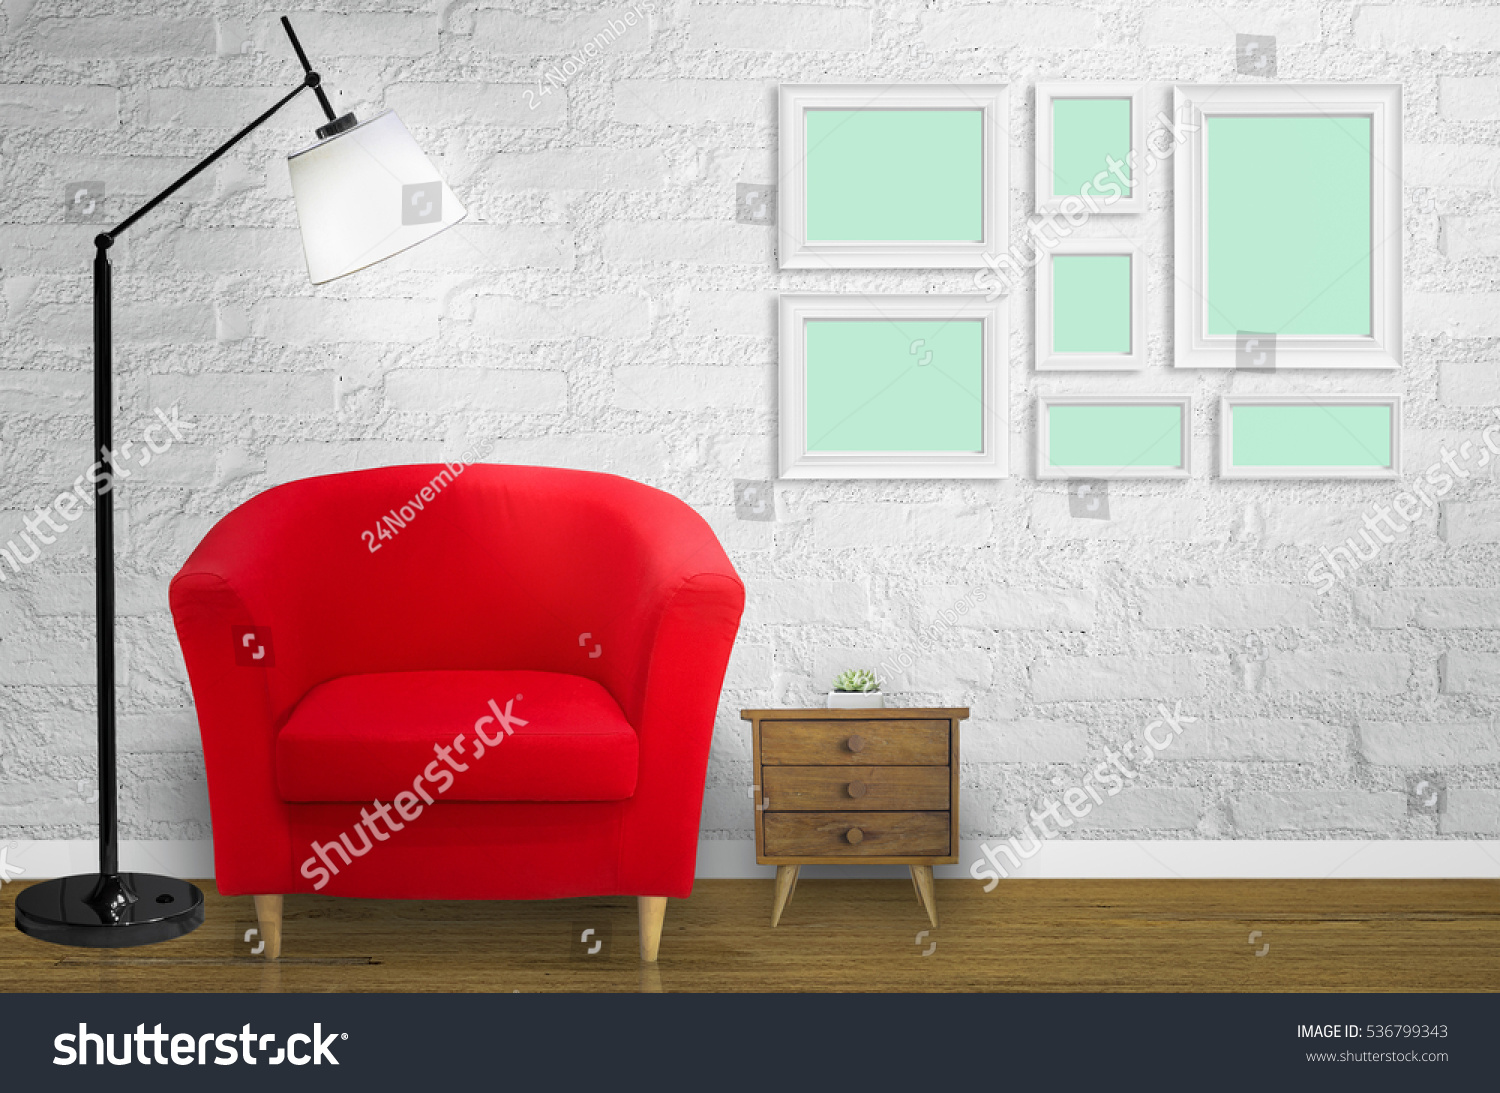 Loft Living Room Red Sofa Front Stock Photo (Royalty Free) 536799343 ...